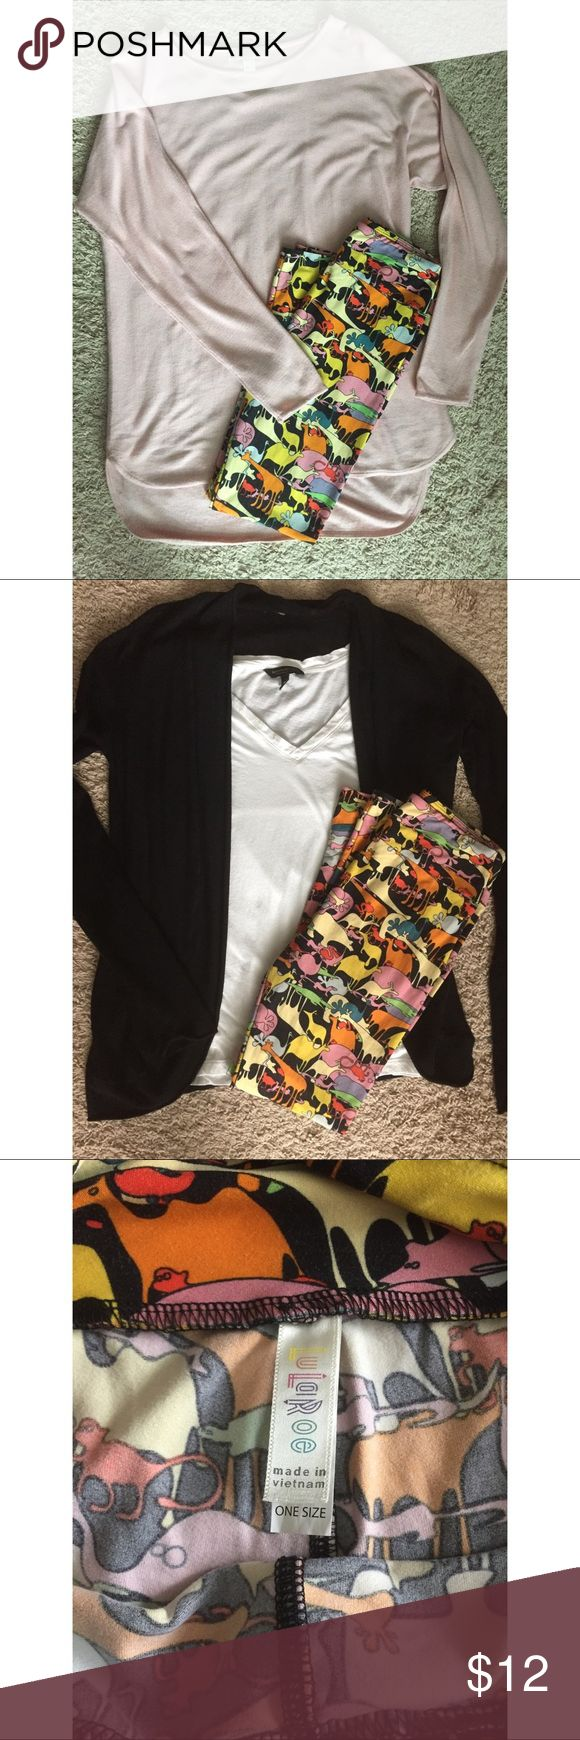 Lularoe OS Leggings (Zoo Animals) Good condition. Worn/washed a handful of times, minor piling in between leg area but not bad. Very colorful w/several different zoo animals, my fave is the gator! I'm only selling cause I have too many leggings. Smoke/Pet free home. Price is firm 🦁🐯🐒🐊 LuLaRoe Pants Leggings